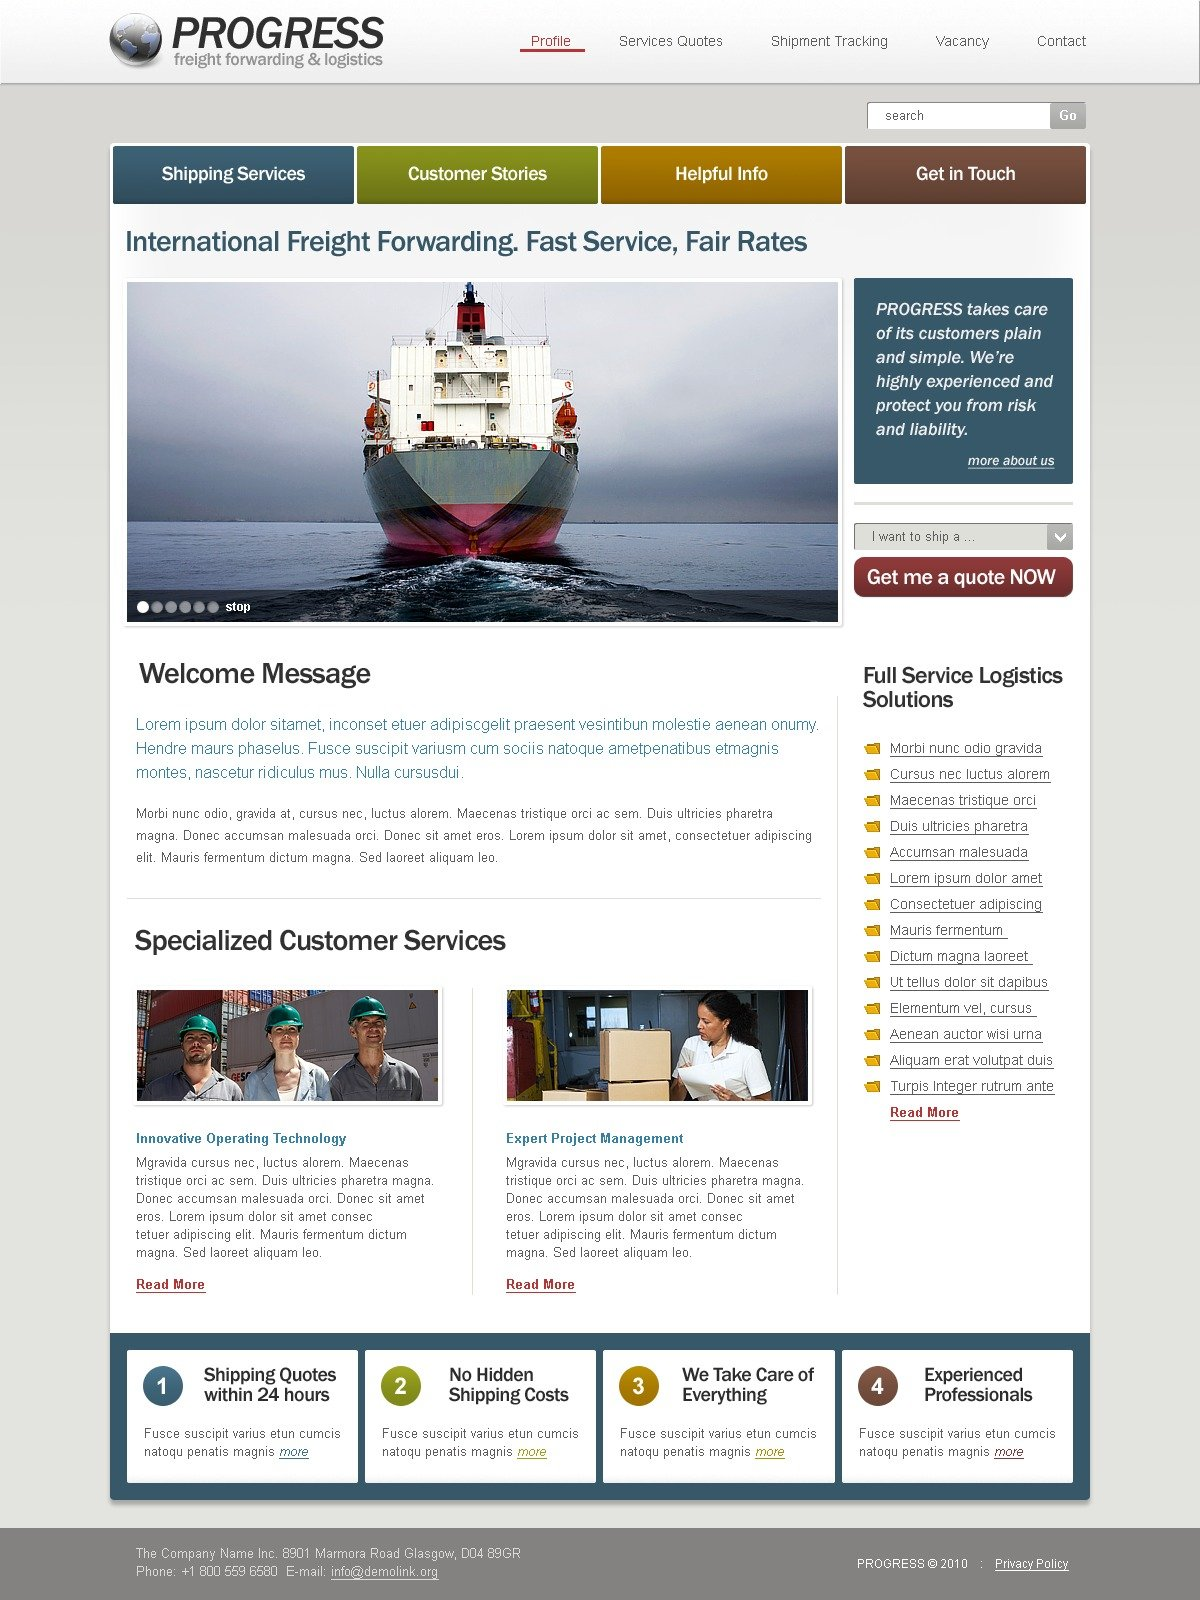 The Freight Forwarding PSD Design 54306, one of the best PSD templates of its kind (transportation, most popular, flash 8, wide), also known as freight forwarding PSD template, logistics company PSD template, services PSD template, delivery PSD template, shipping PSD template, transportation PSD template, trucking provider and related with freight forwarding, logistics company, services, delivery, shipping, transportation, trucking provider, etc.